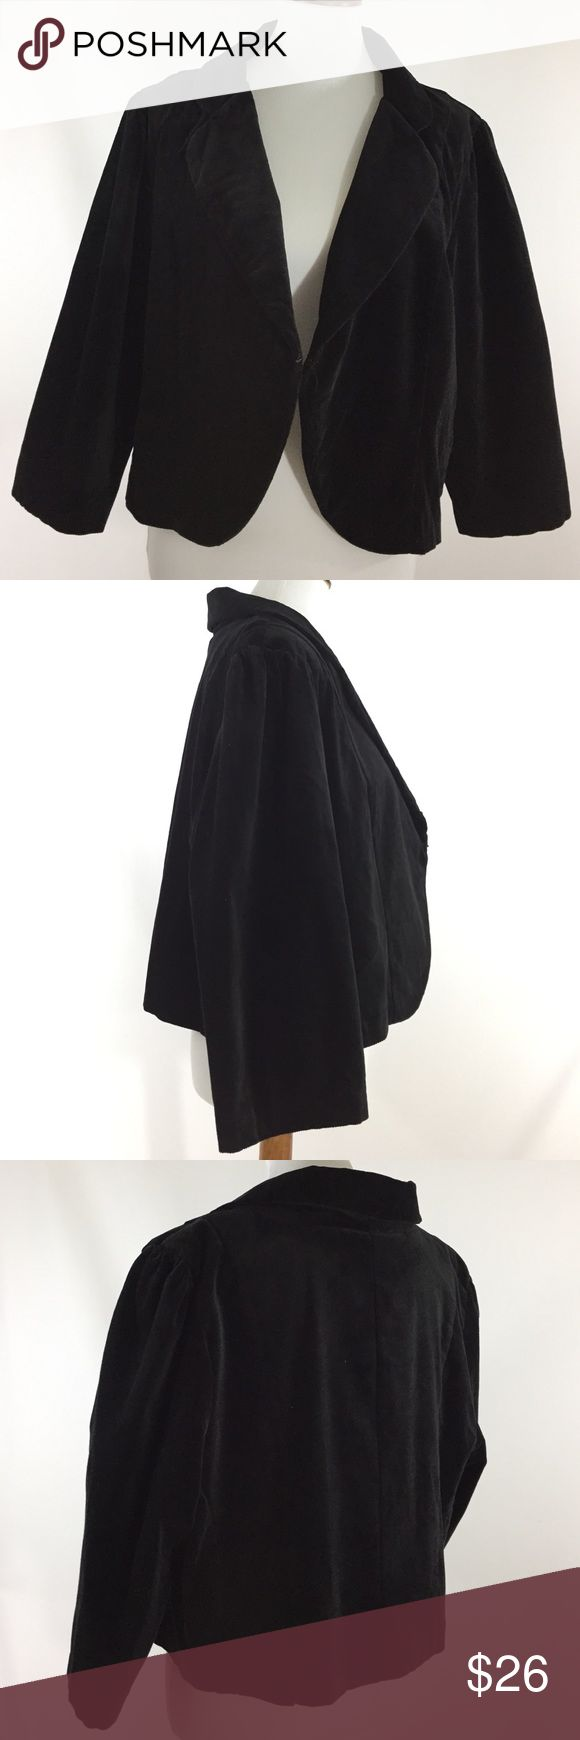 """Torrid 3 Black Velvet like Blazer Coat Plus Size Excellent used condition.  Zero flaws. Torrid 3 Black velvet-like Cotton & Spandex Blend. Bolero blazer jacket half coat. 3/4 Sleeves. Rounded notched collar. Tiny hook closure at waistline. Looks great open or closed. The interior back portion of the jacket is lined. Plus size 22/23 Measurements laying flat: Armpit to armpit 24"""" Length 20.5"""" (top. Of shoulder to bottom of coat) Arm length 11"""" (pit to end of sleeve)  Jacket looks fantastic…"""